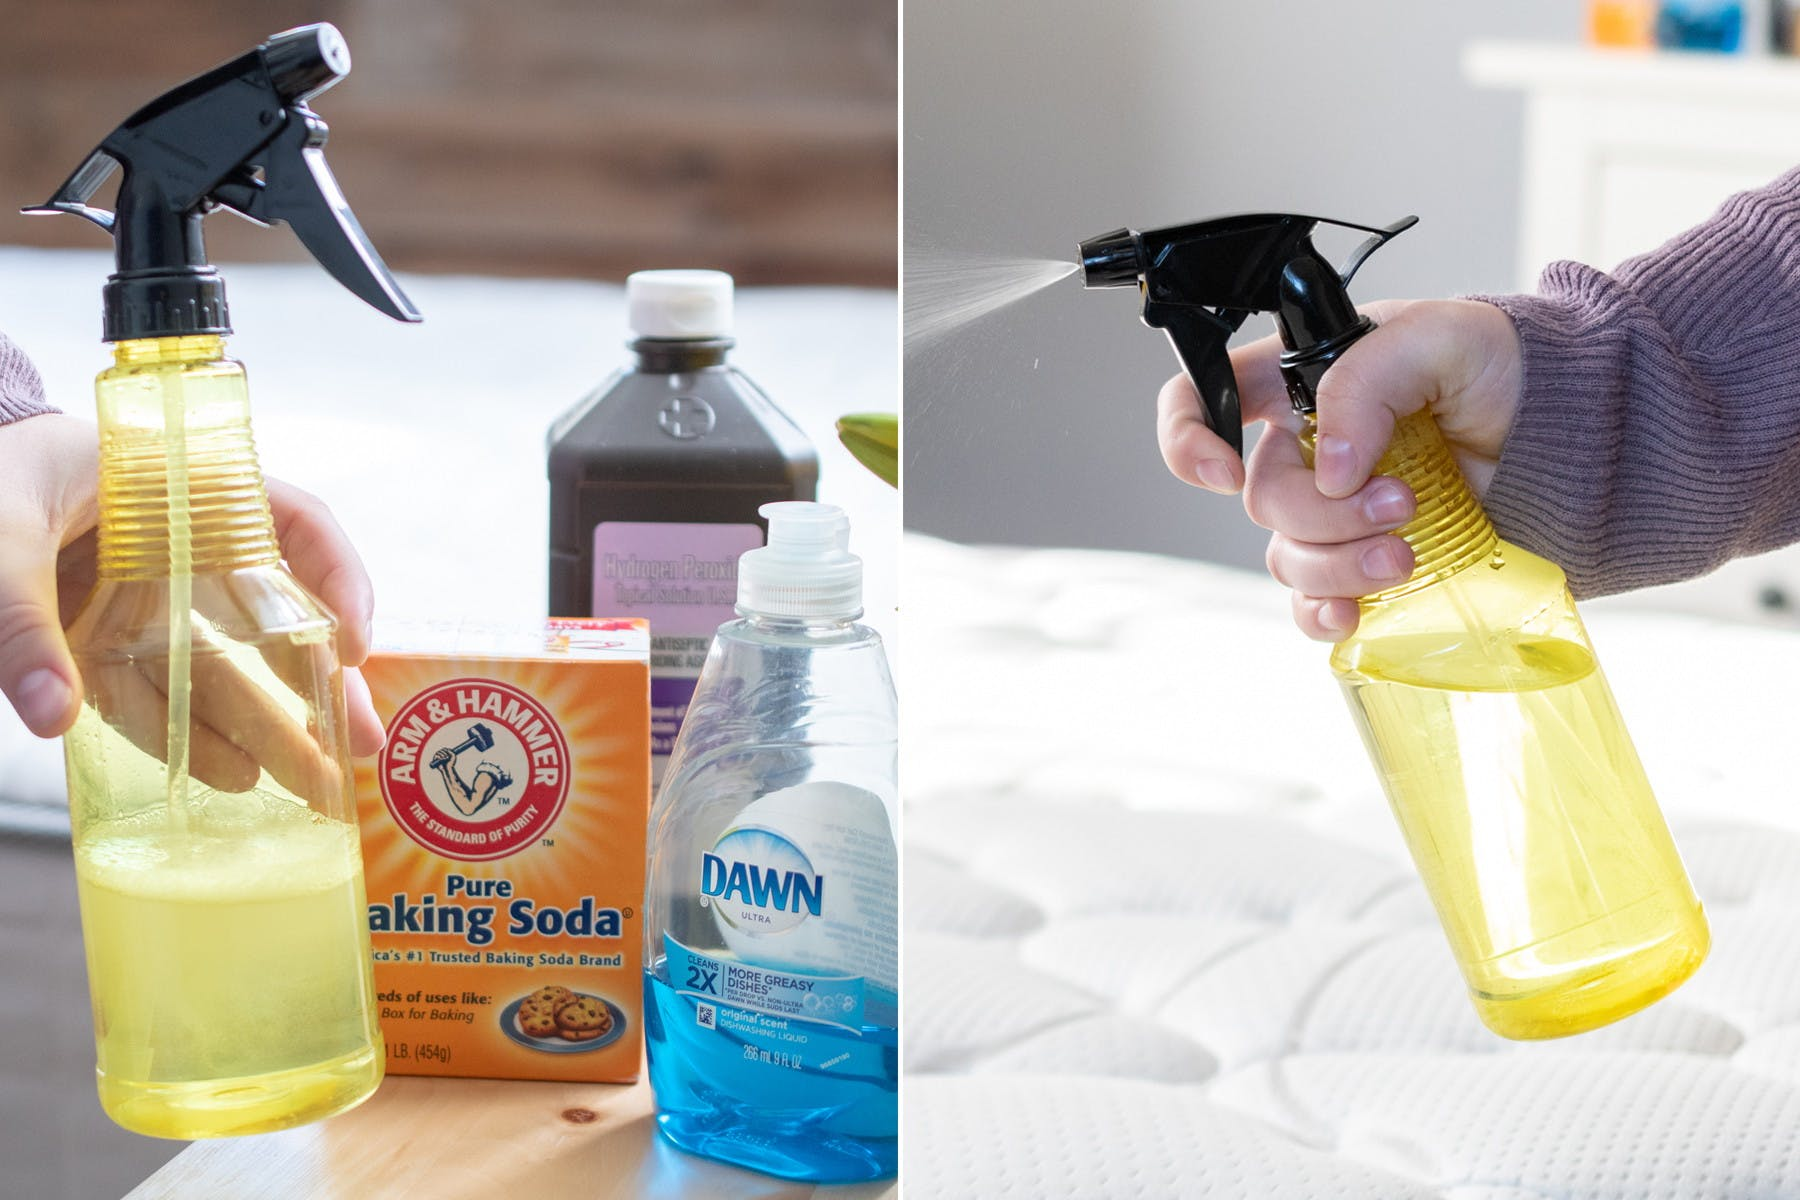 24 Dawn Dish Soap Uses That Will Make Your Life Easier The Krazy Coupon Lady